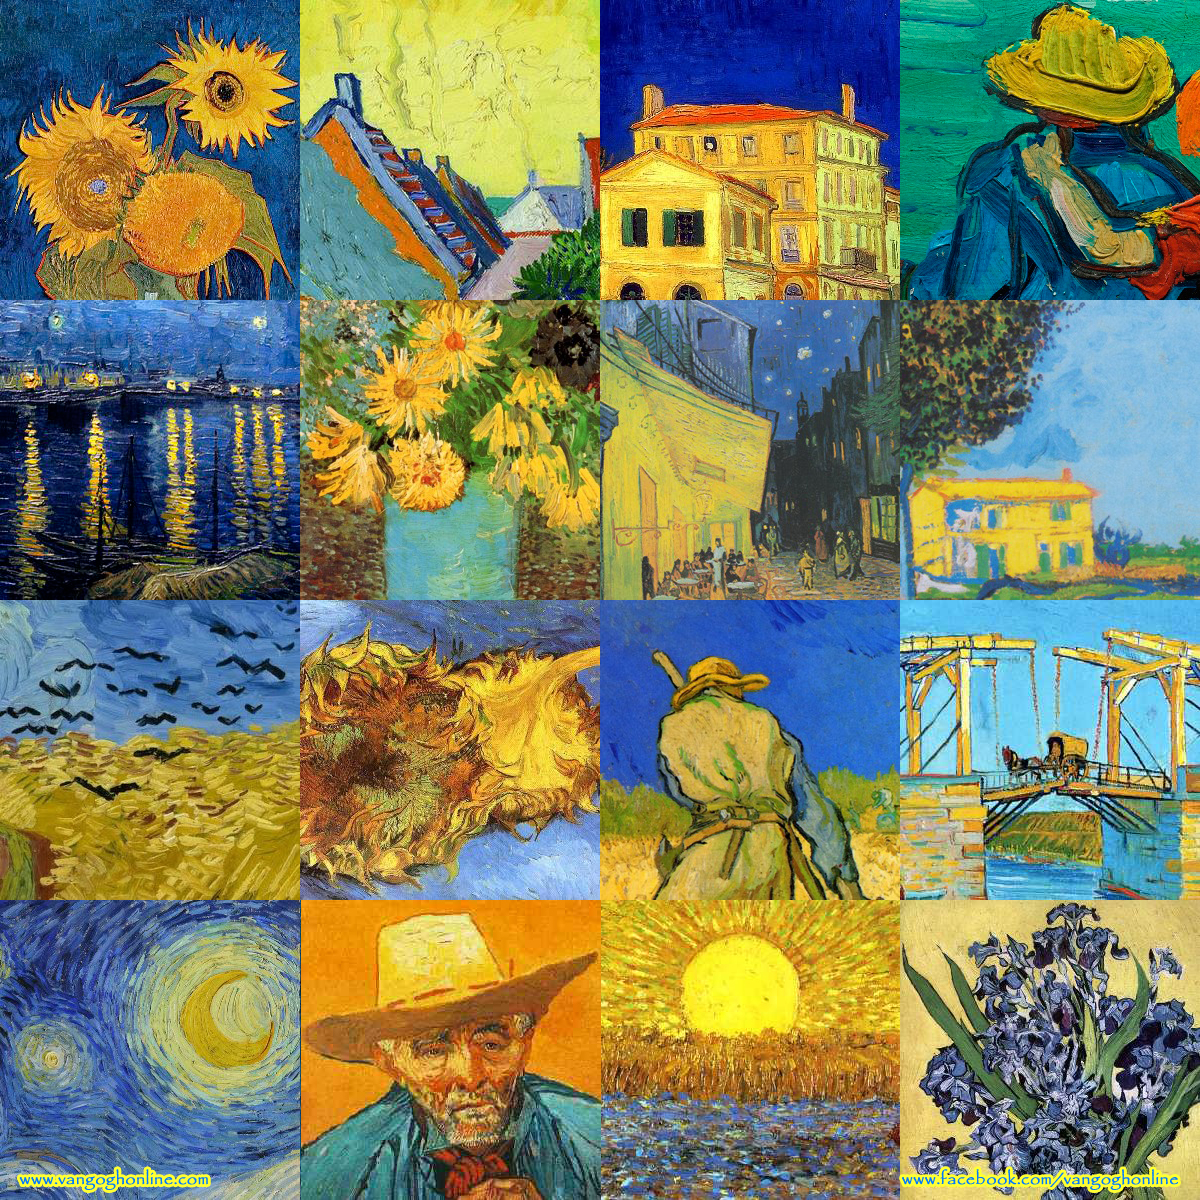 Montage of Vincent van Gogh paintings using the colors blue, yellow, and orange